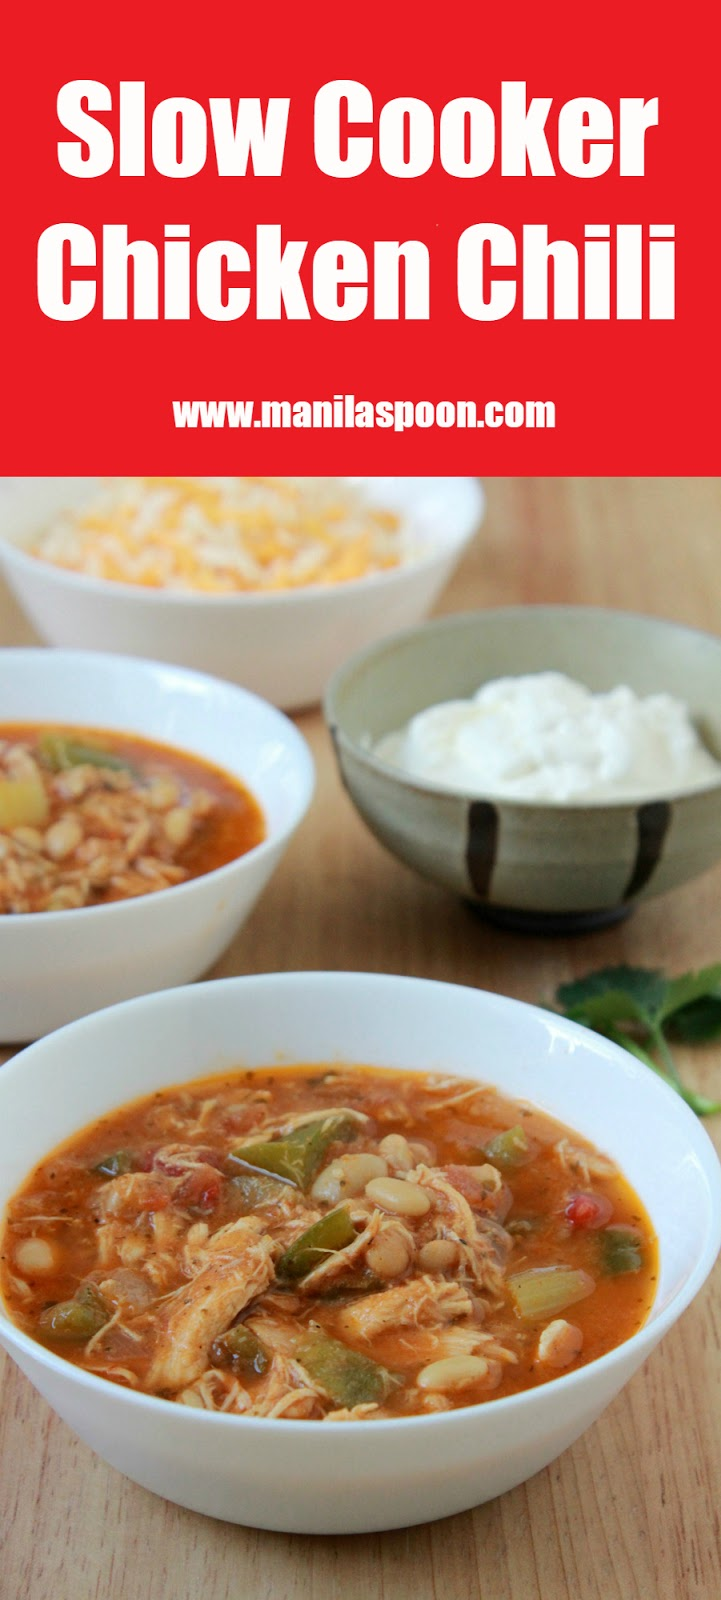 I have made this chili many times for my family and friends and it's always well loved and the super easy recipe is often requested. #slowcooker #chicken #turkey #chili